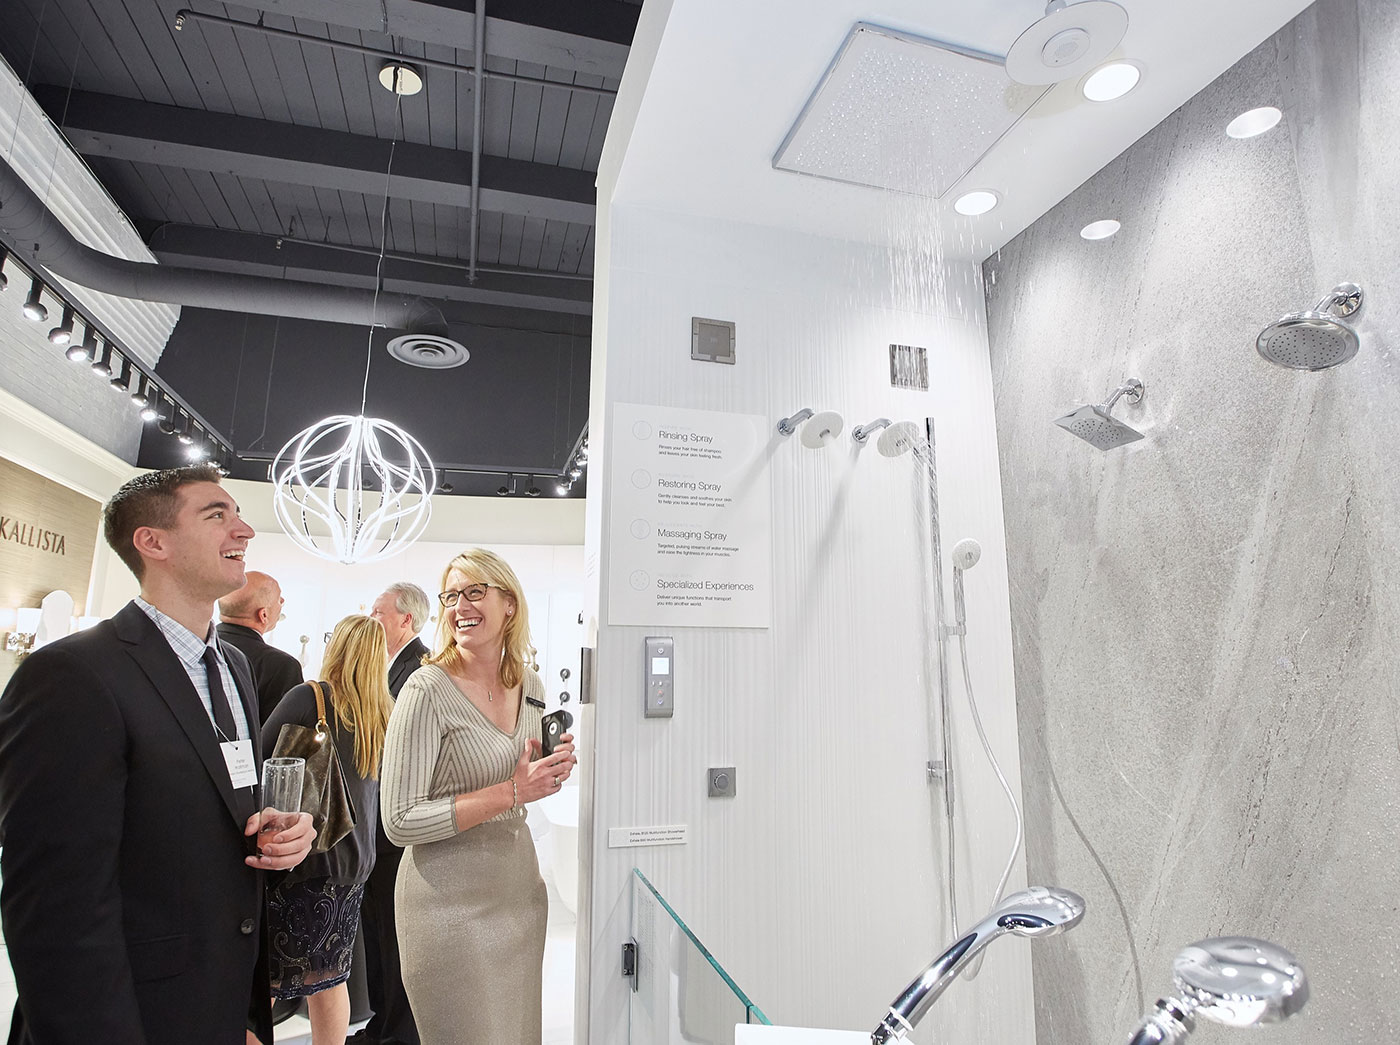 Kohler Signature Store in Boston Grand Opening